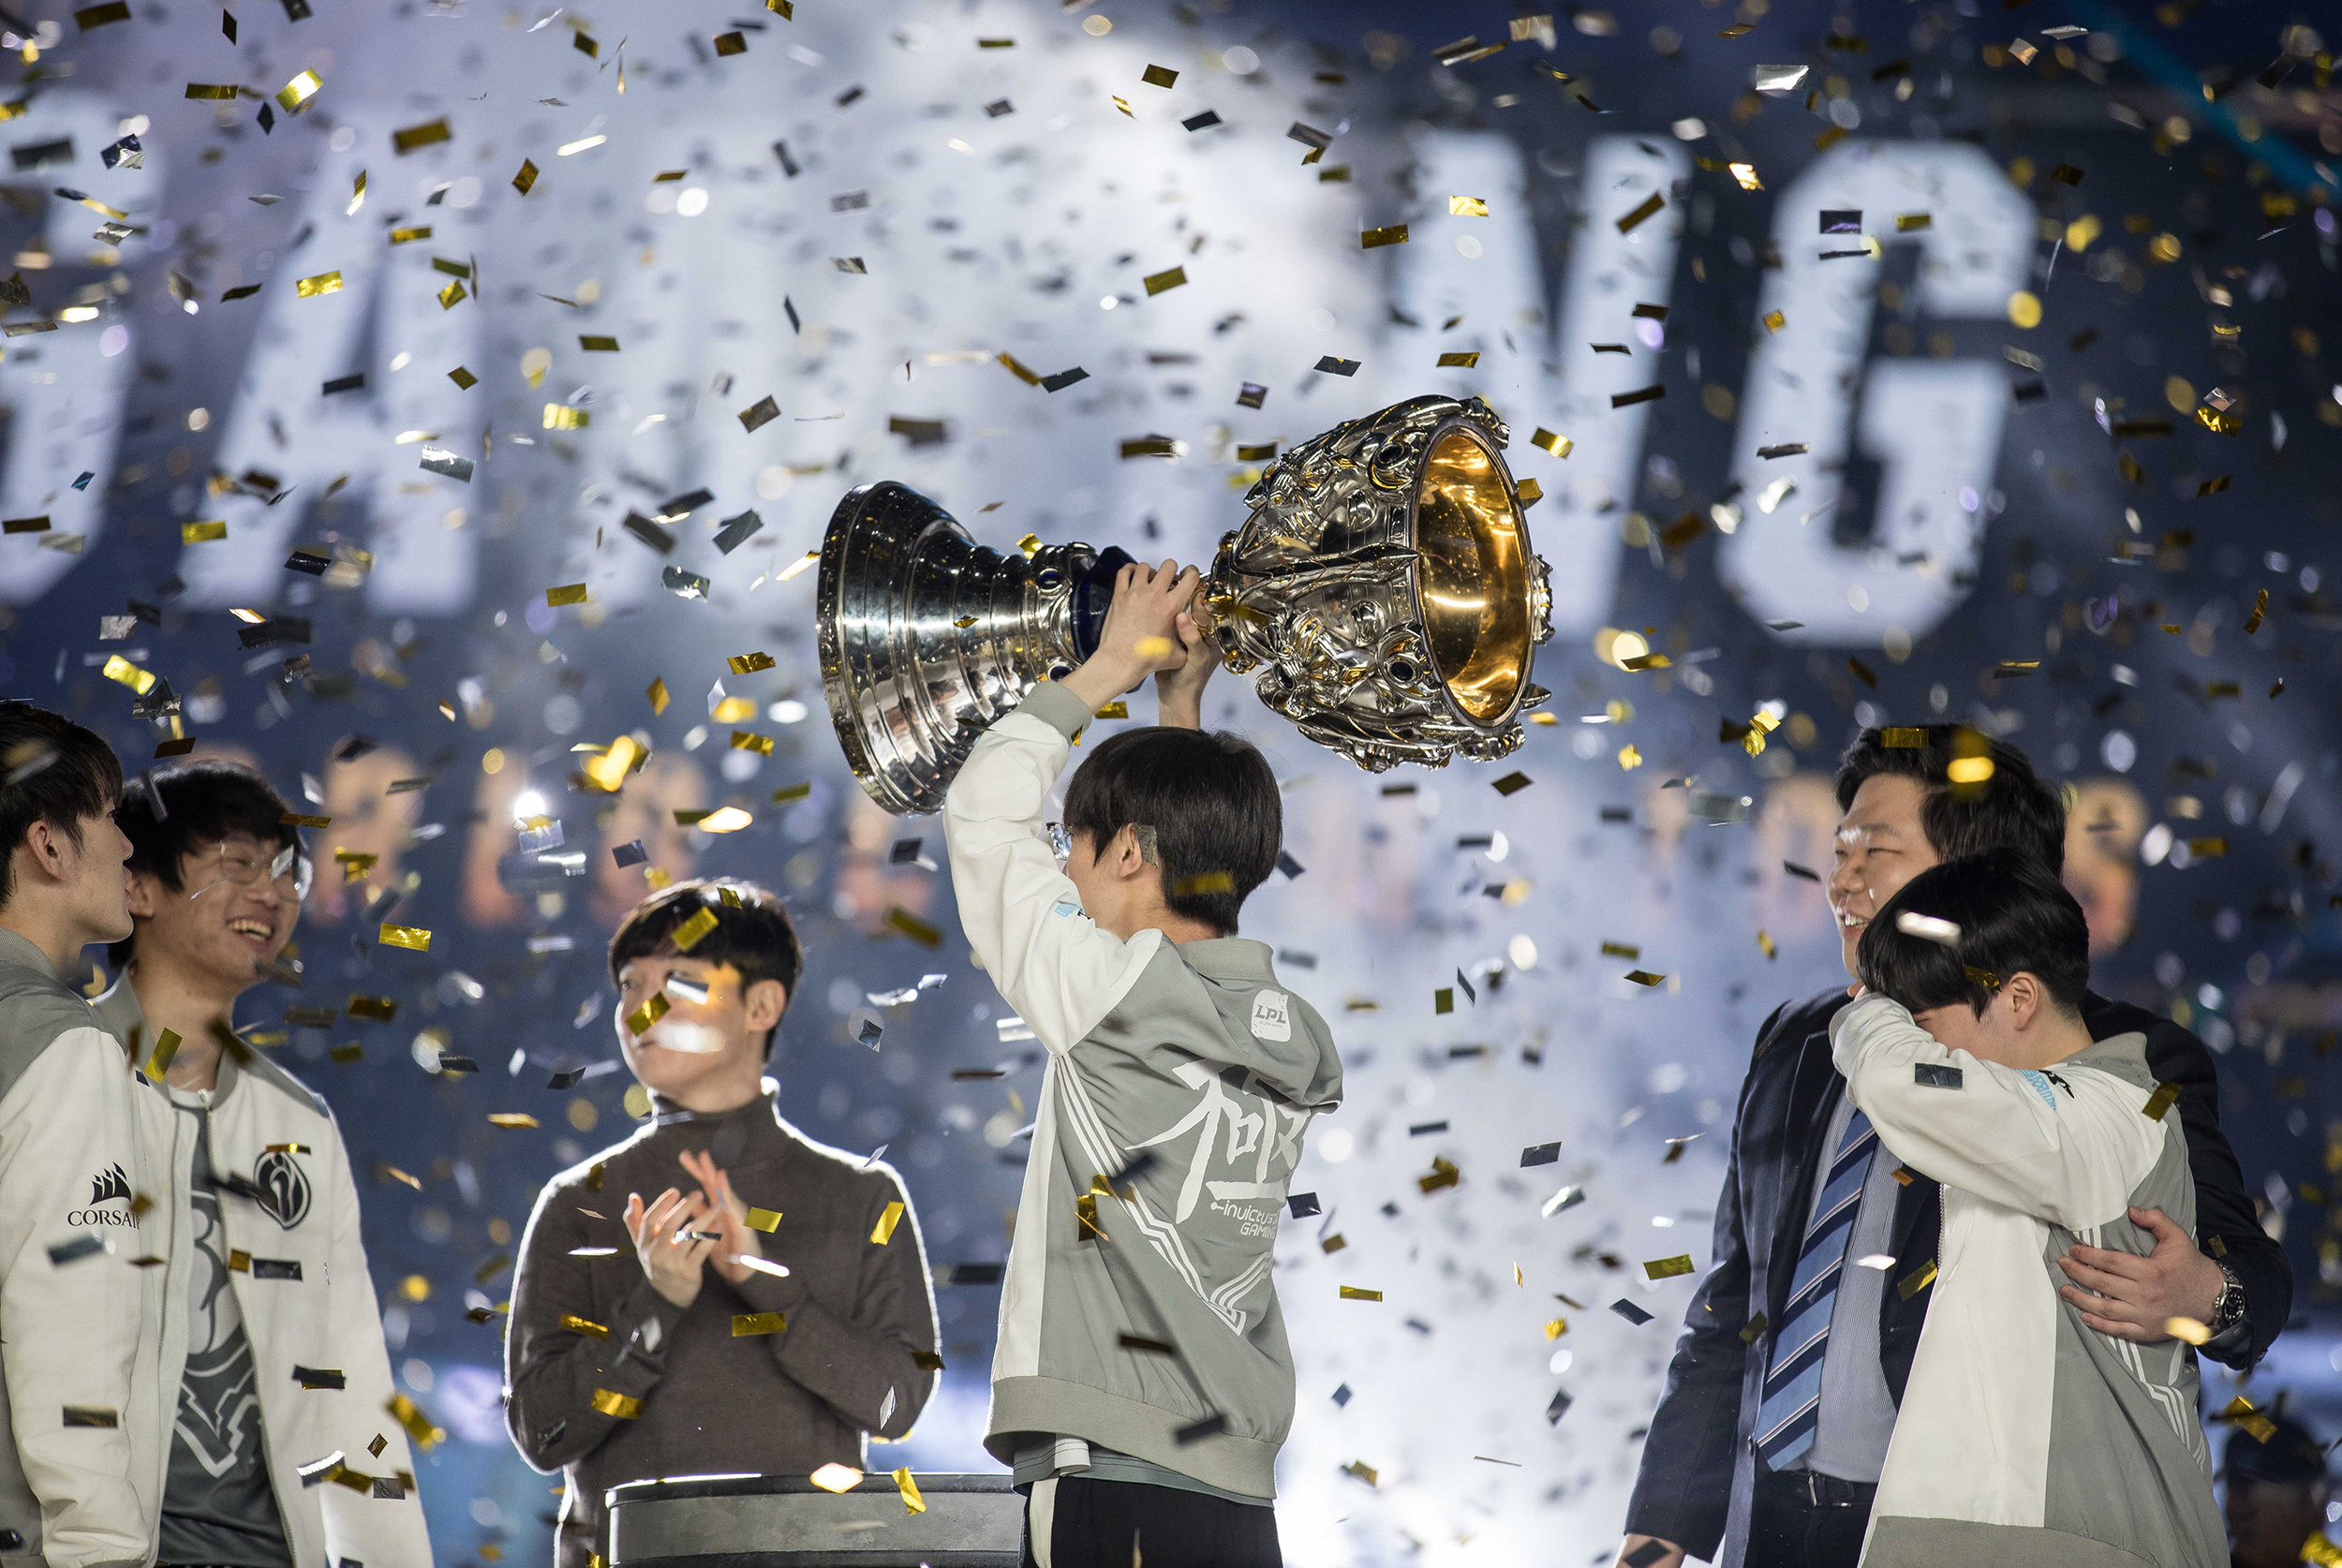 Invictus Gaming wins, hoisting their trophy at 2018 League of Legends World Championship sponsored by Mastercard on November 3, 2018 in Incheon, South Korea.  Photo by Hannah Smith/ESPAT Media for Mastercard